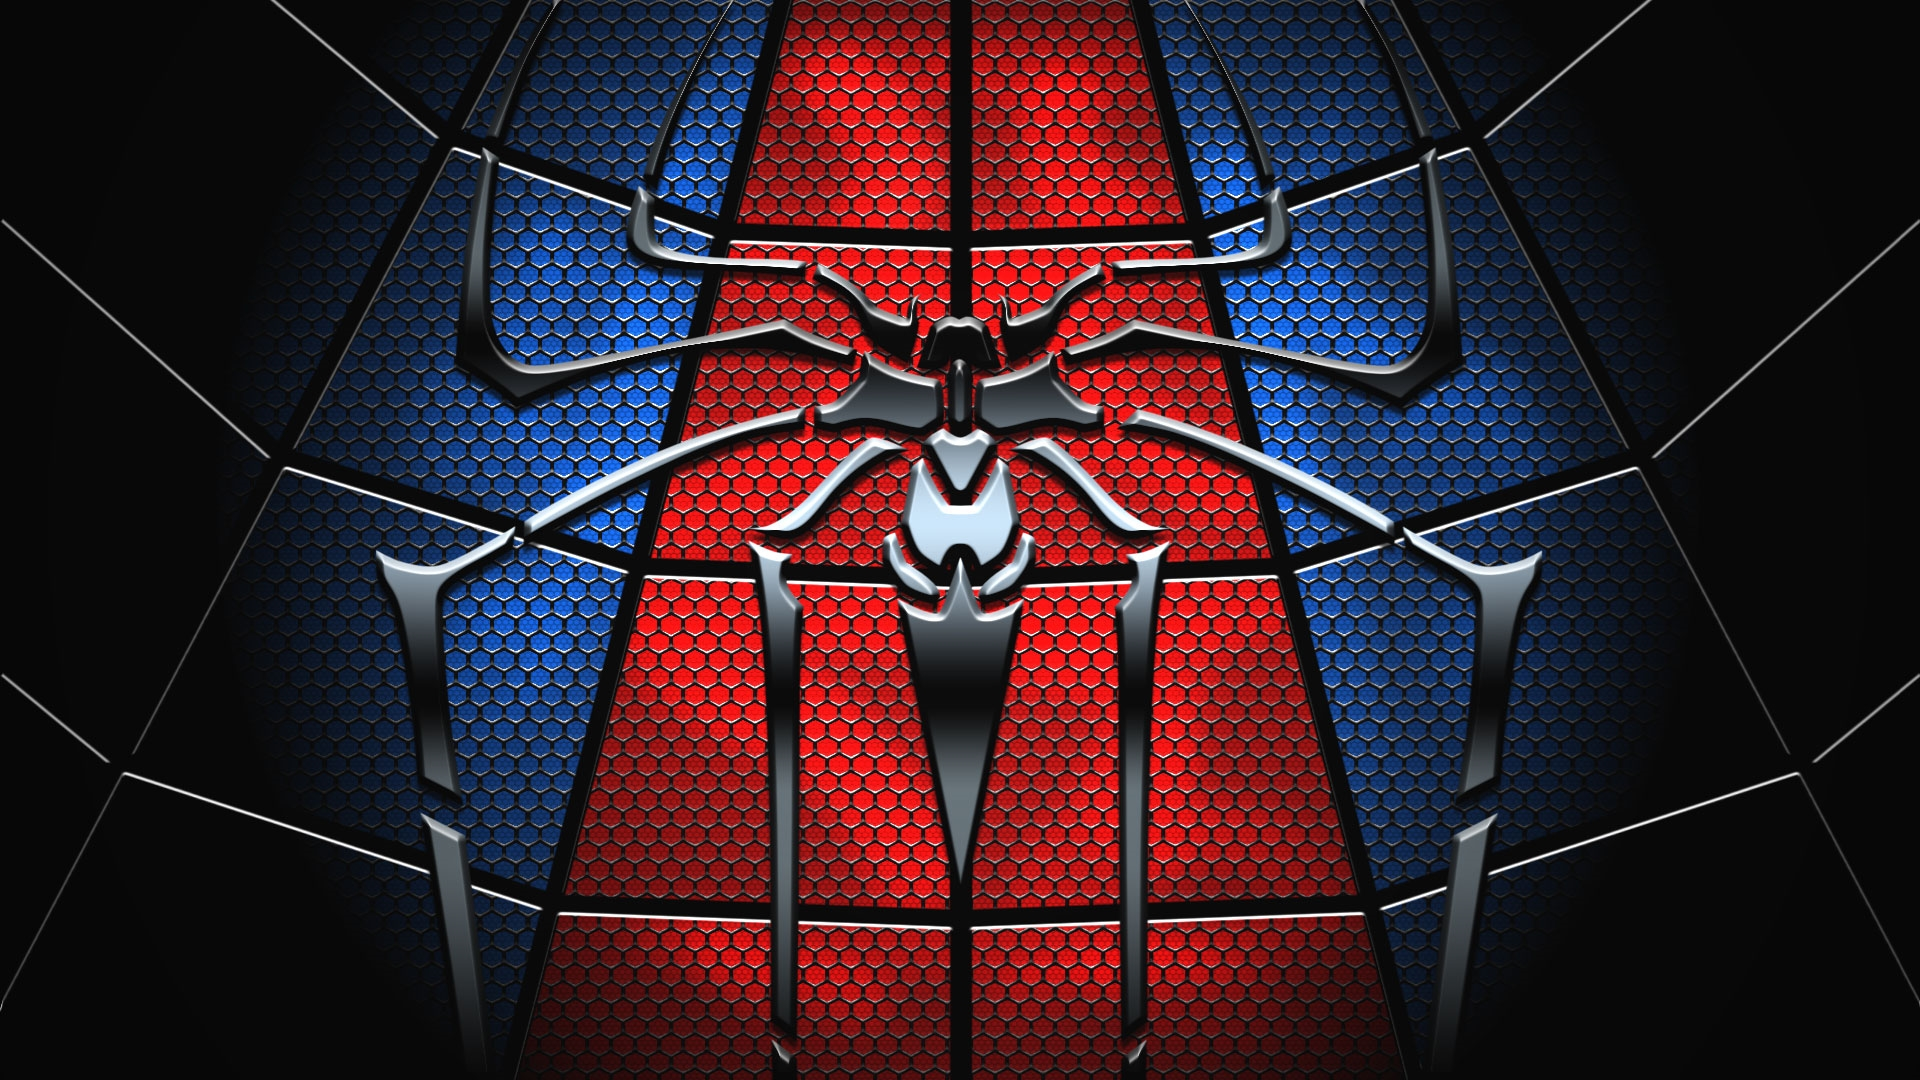 Spiderman Hd Image Wallpaper Free